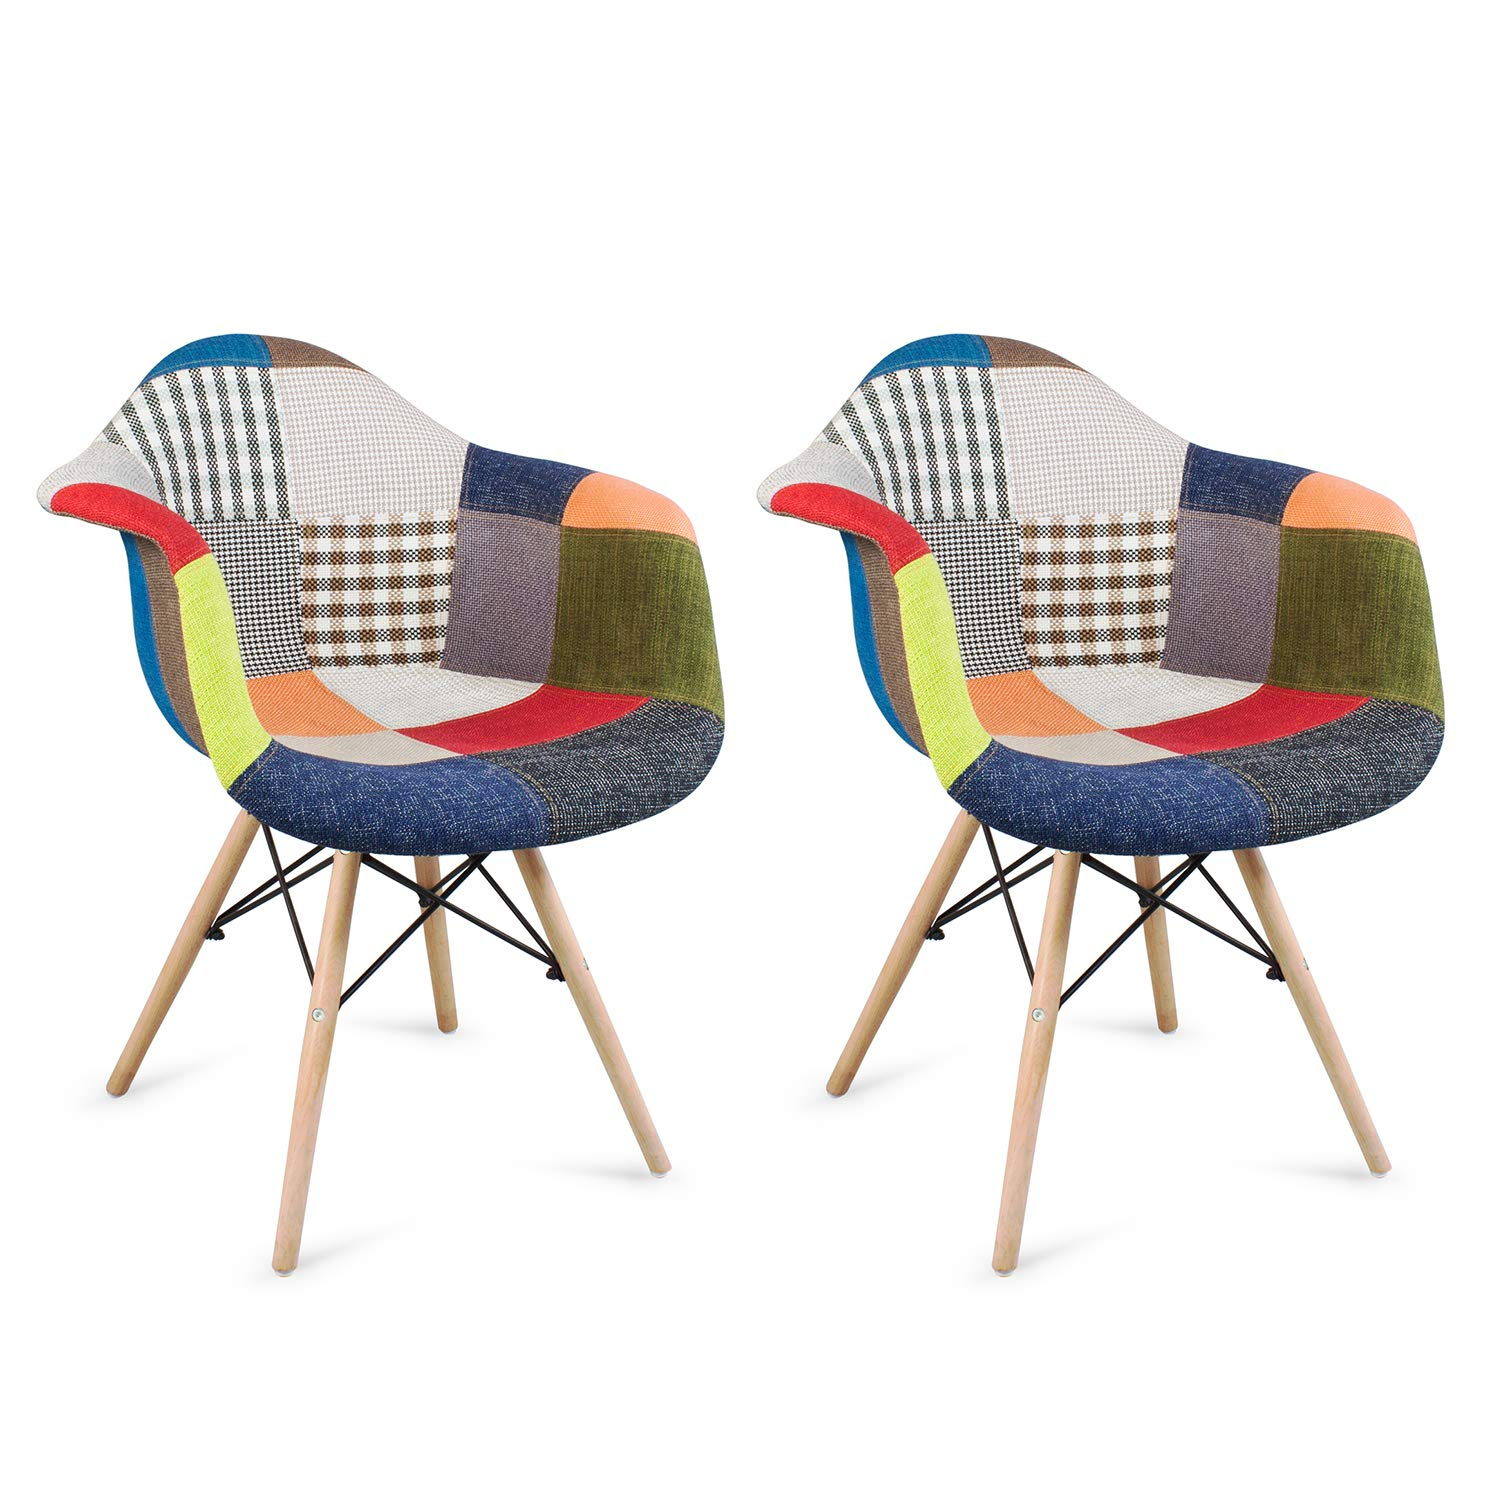 Patchwork Chair Fabric Retro Armchair Set of 2 Multicolor Eiffel Dining Chair Office Chair Vintage Chair with Wood Leg for Living Room Bedroom Dining Room Set Home Office Furniture patchwork chair*2